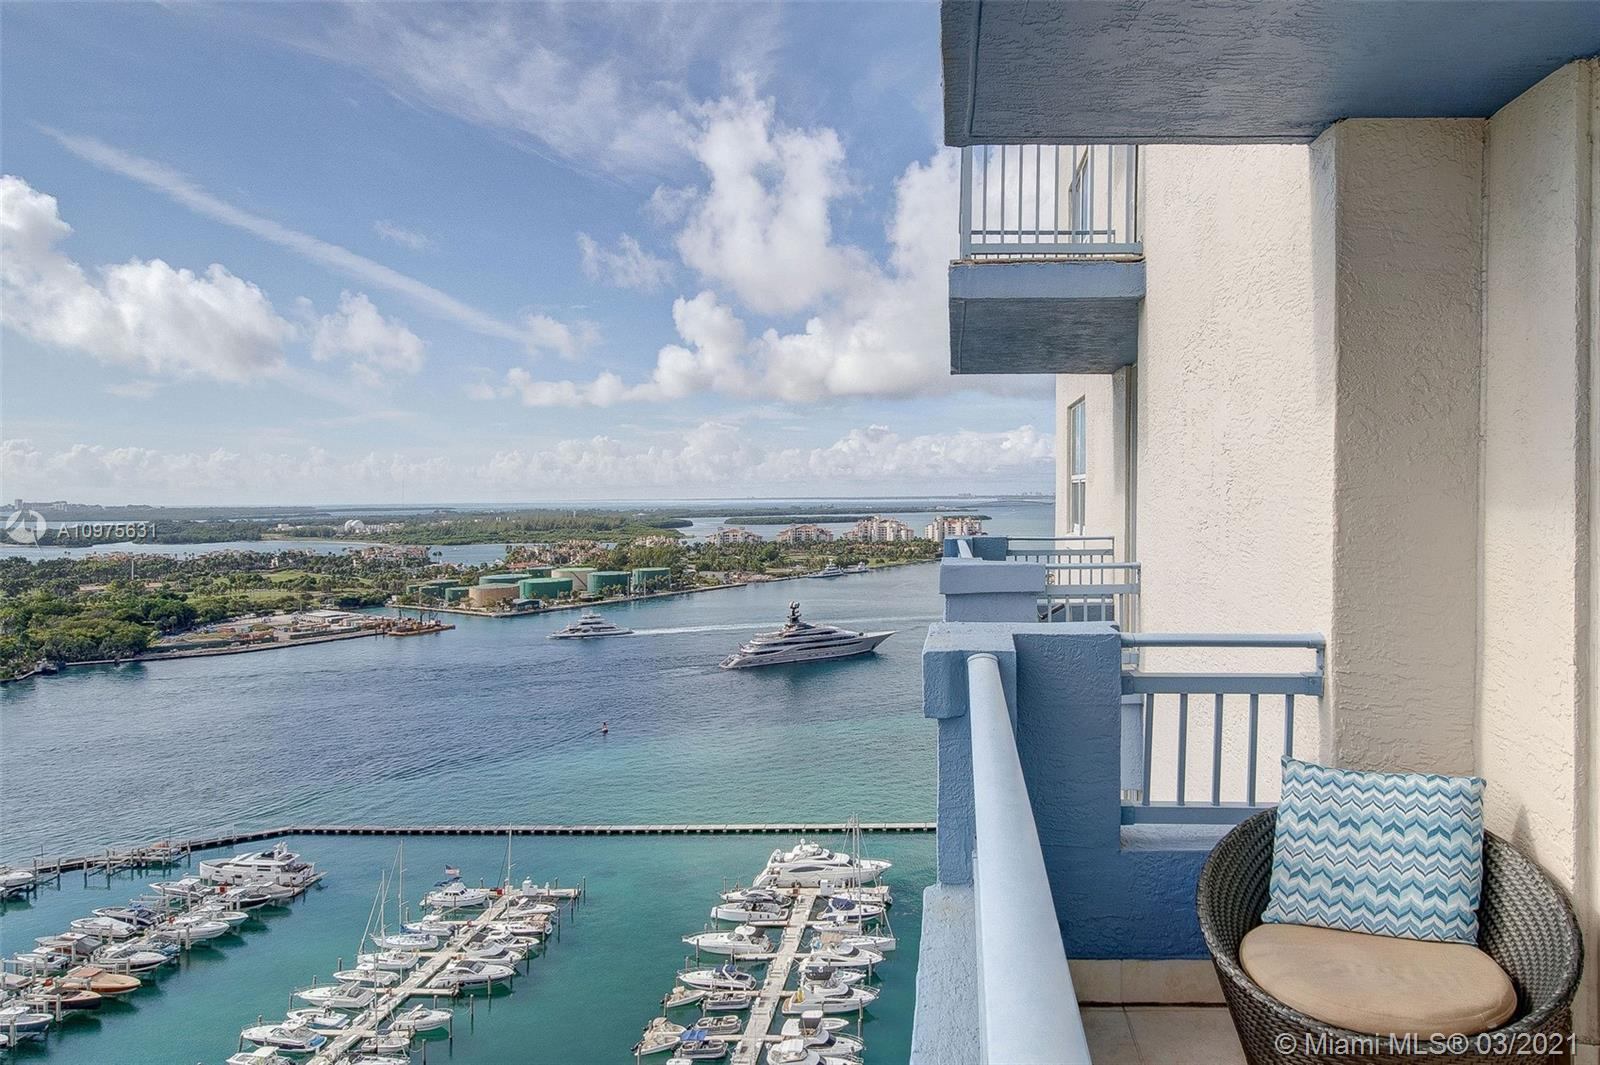 The best time to invest in Miami's real estate market is now! Enjoy direct ocean views, Art Deco District & Fisher Island from every room 27 stories high from this SE corner 2BR/2Bath condo at the Yacht Club of Portofino, located in SoBe's exclusive & highly desirable South of Fifth neighborhood! Rarely available 01 line & well features marble floors, 2 balconies, great closet space, full size W/D and natural light throughout! Great for investors in lucrative short term rental market in Miami Beach - the ONLY luxury condo bldg SoFi that allows short term rentals (min 30 days, 12 times a year). Enjoy resort-style amenities including tennis, pool, gym, Italian Bistro, convenience market store & Blow Dry Bar!